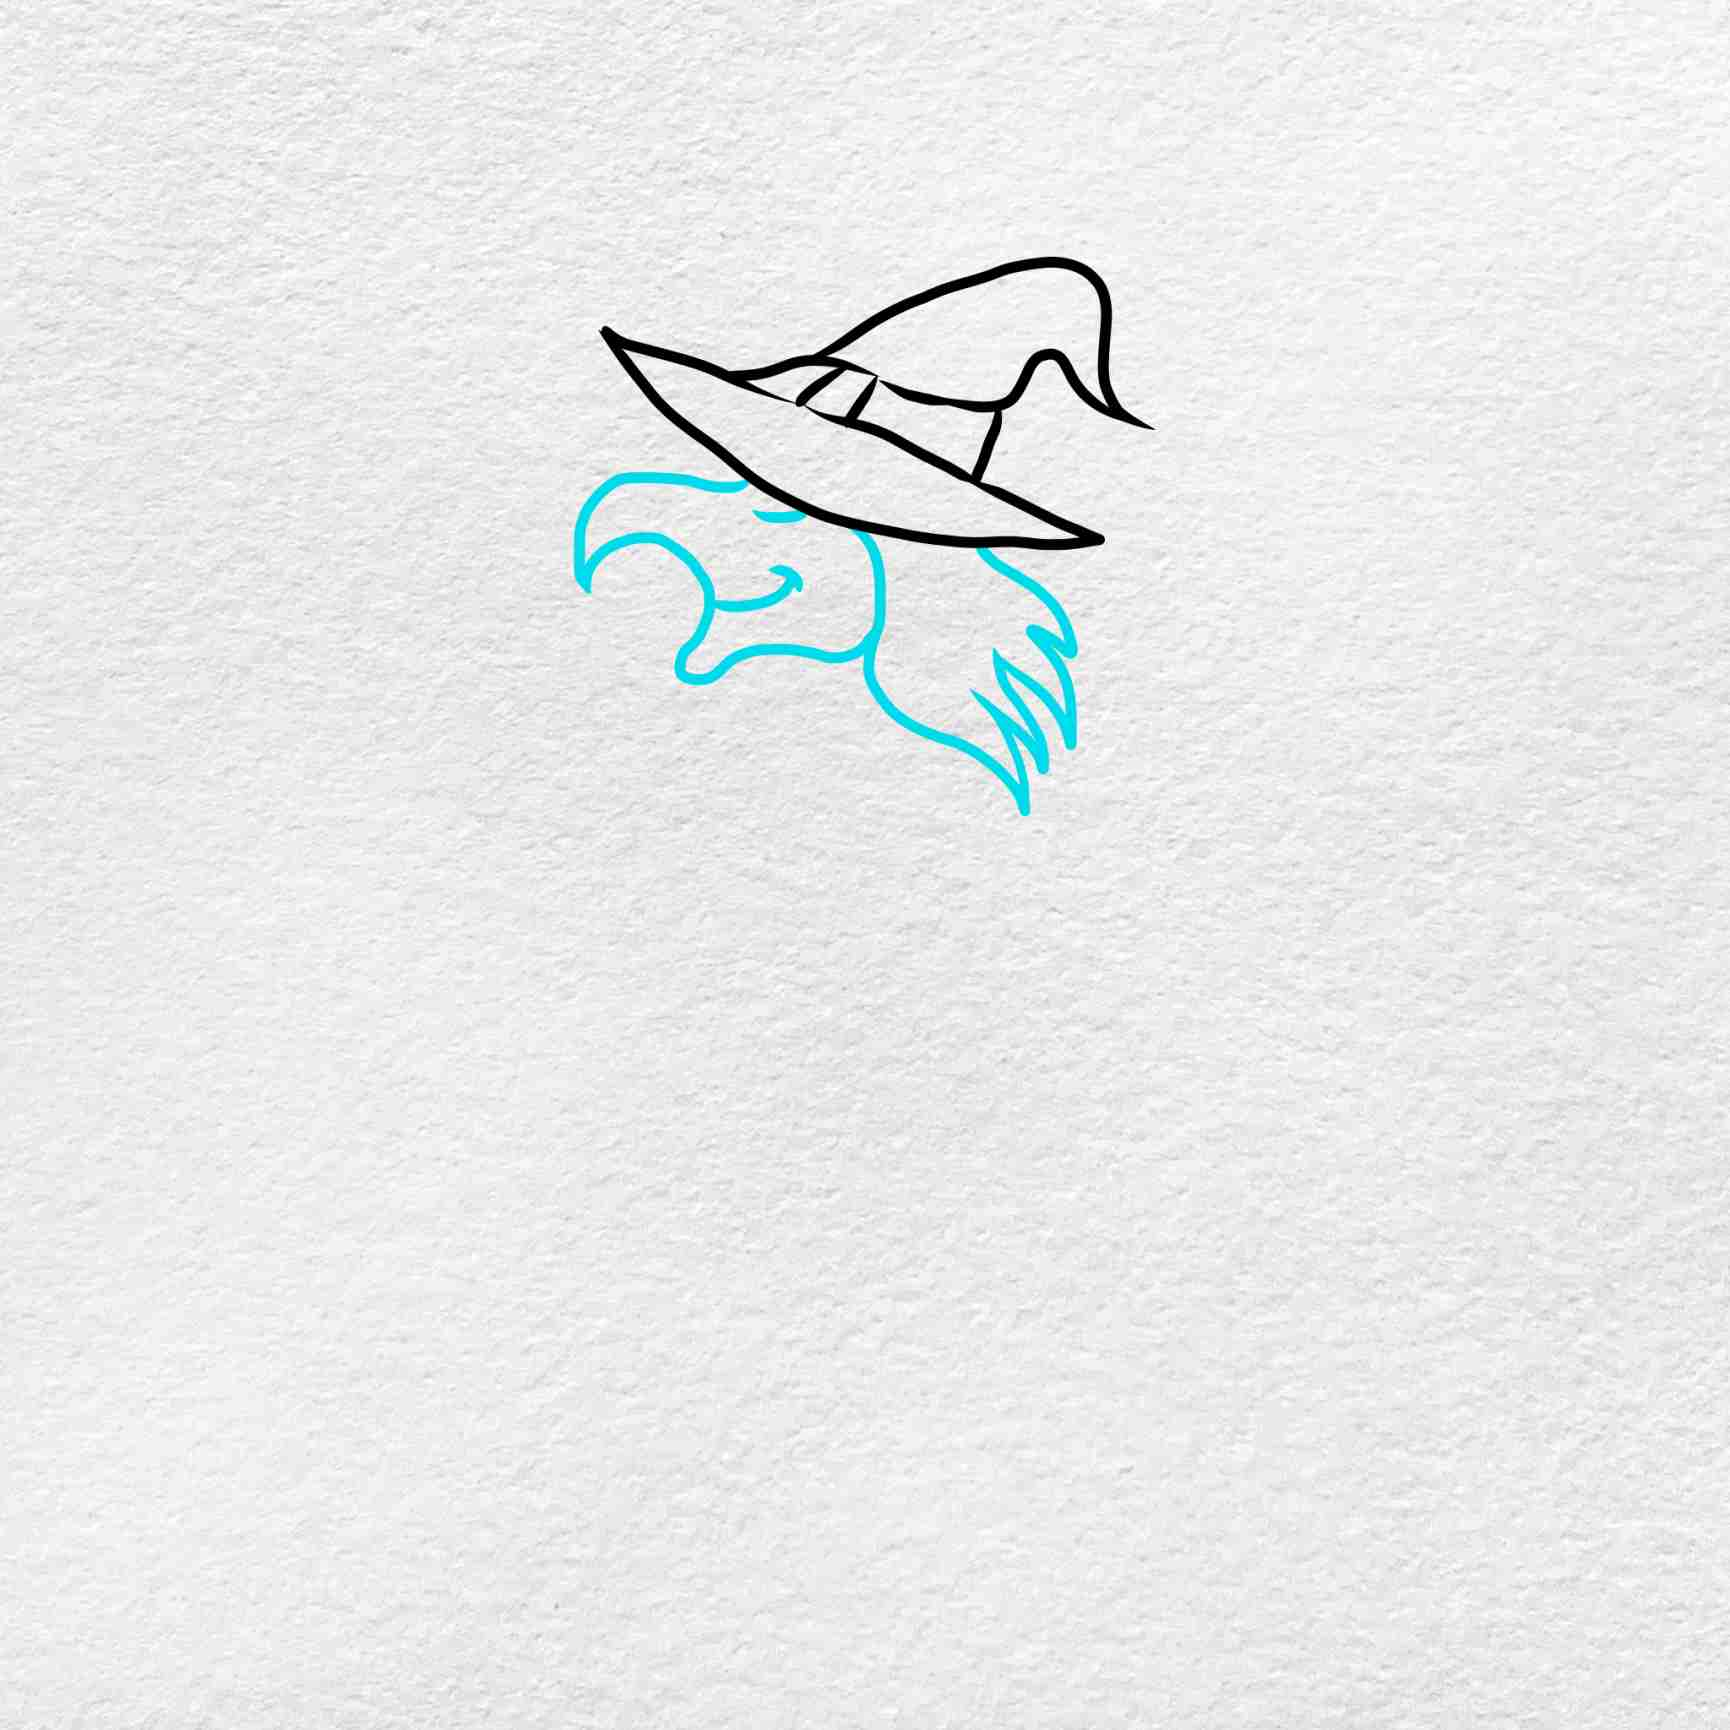 Easy Witch Drawing: Step 2